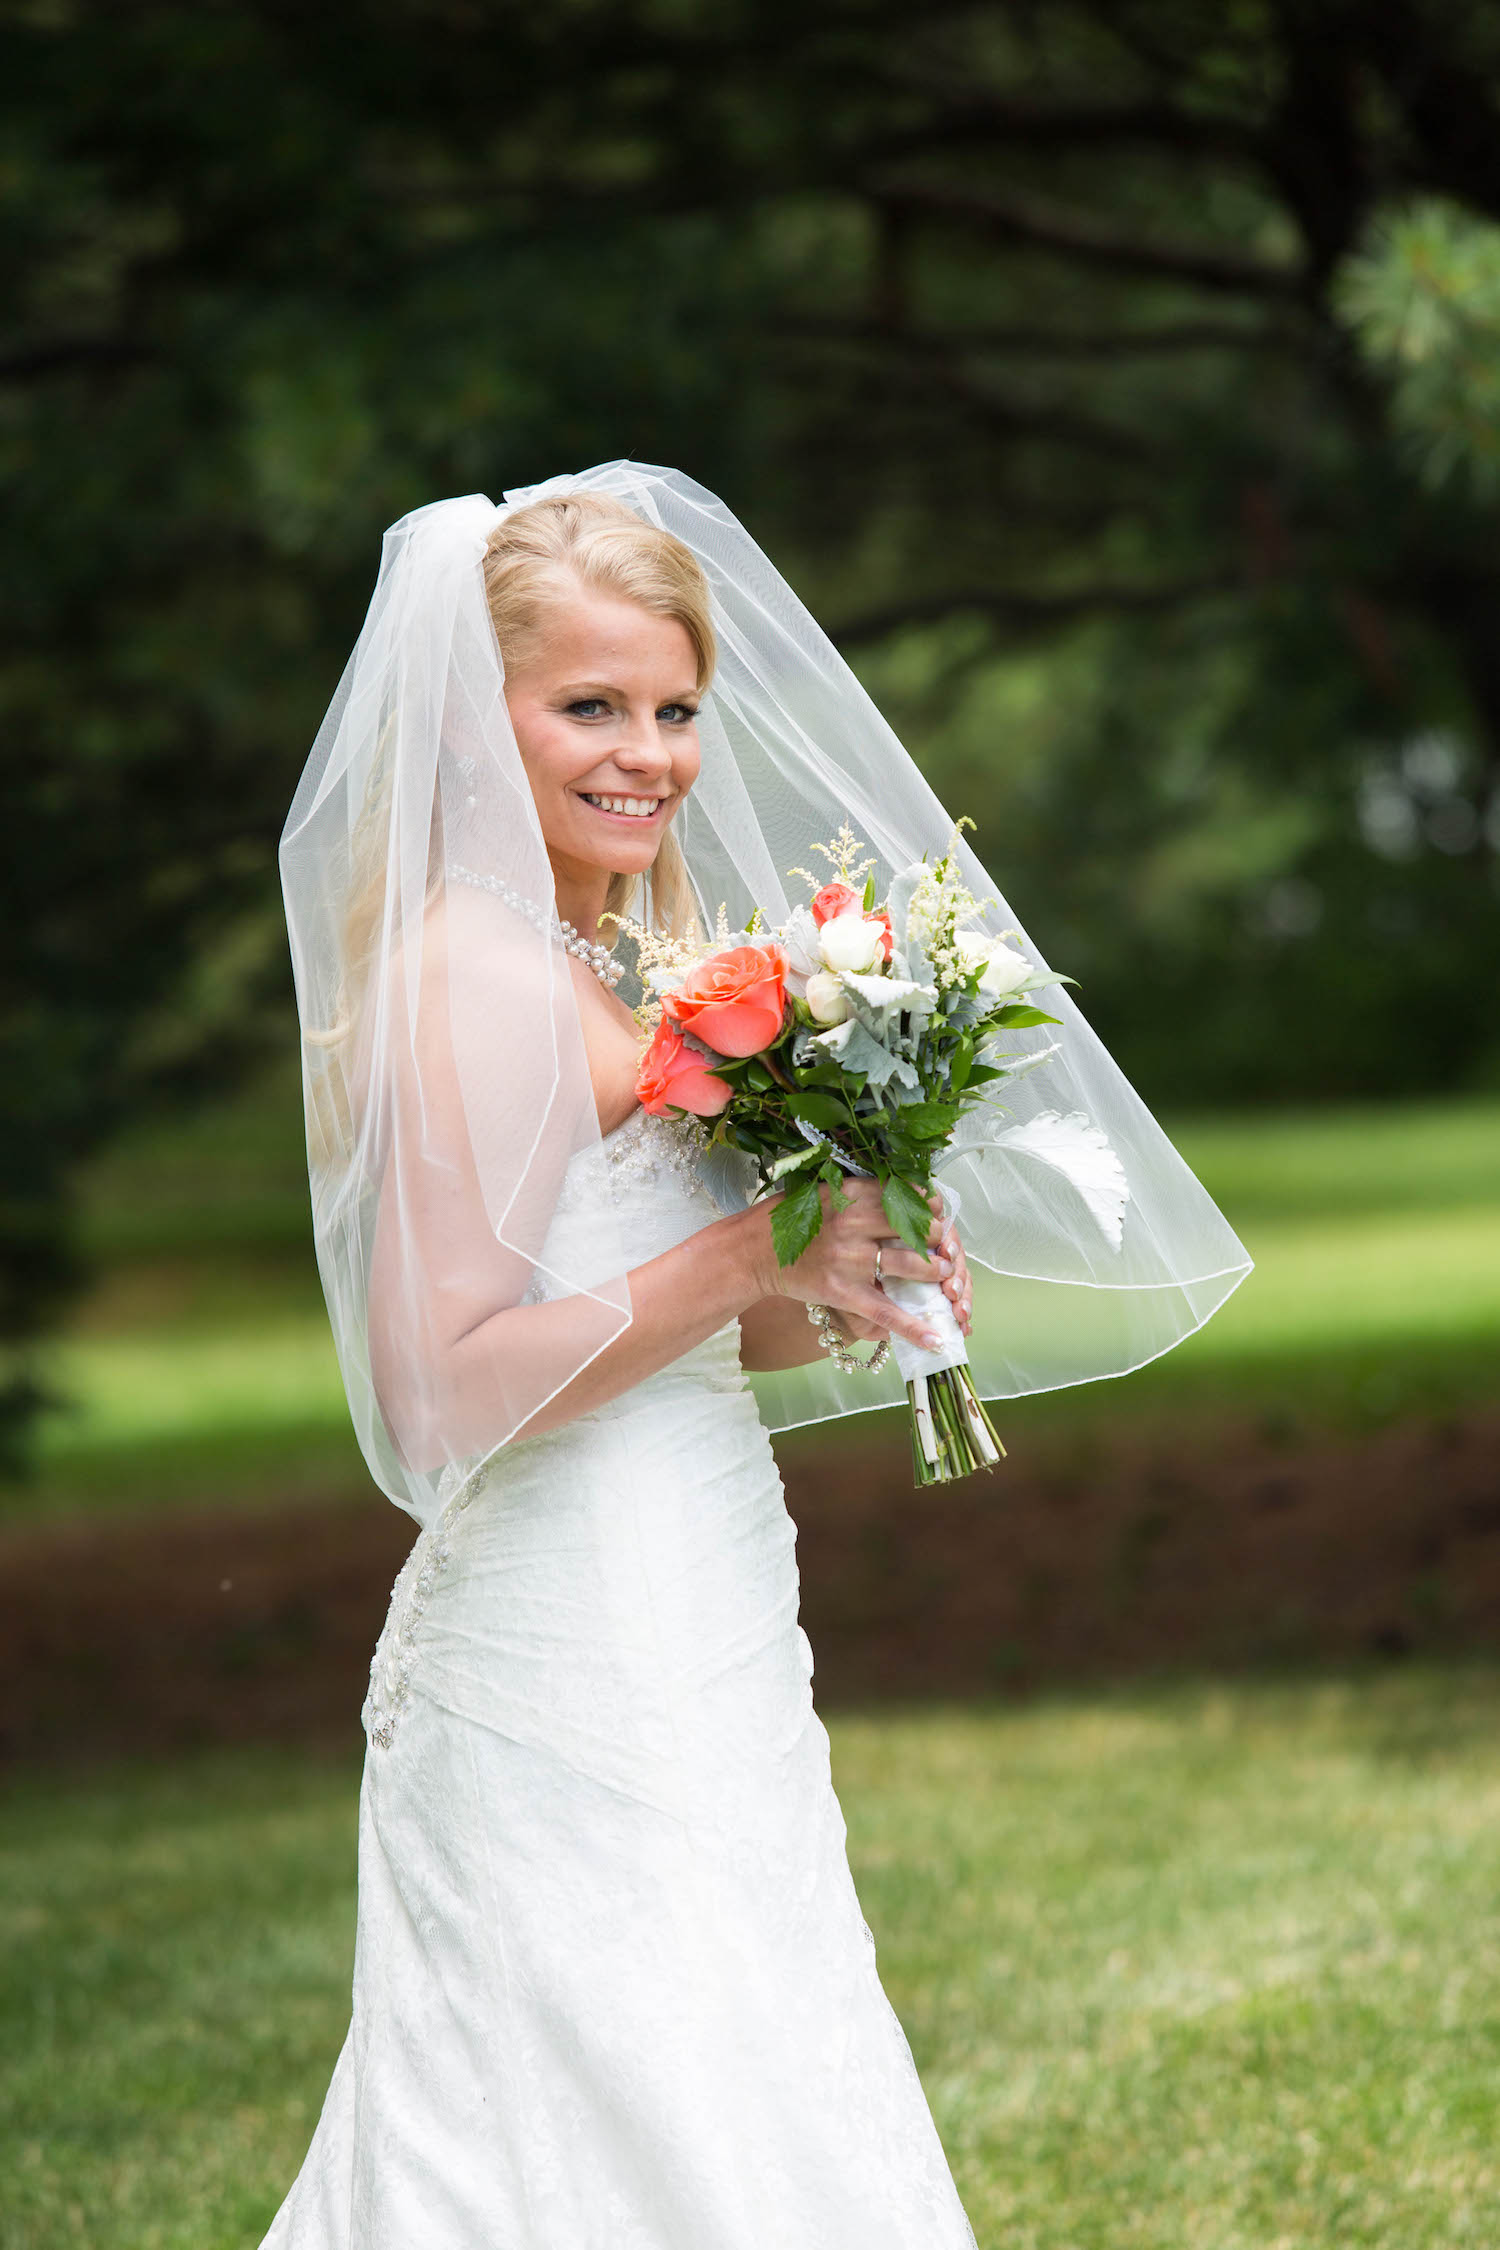 Cindyrellas Garden, outdoor lake ceremony in Minnesota, blonde bride